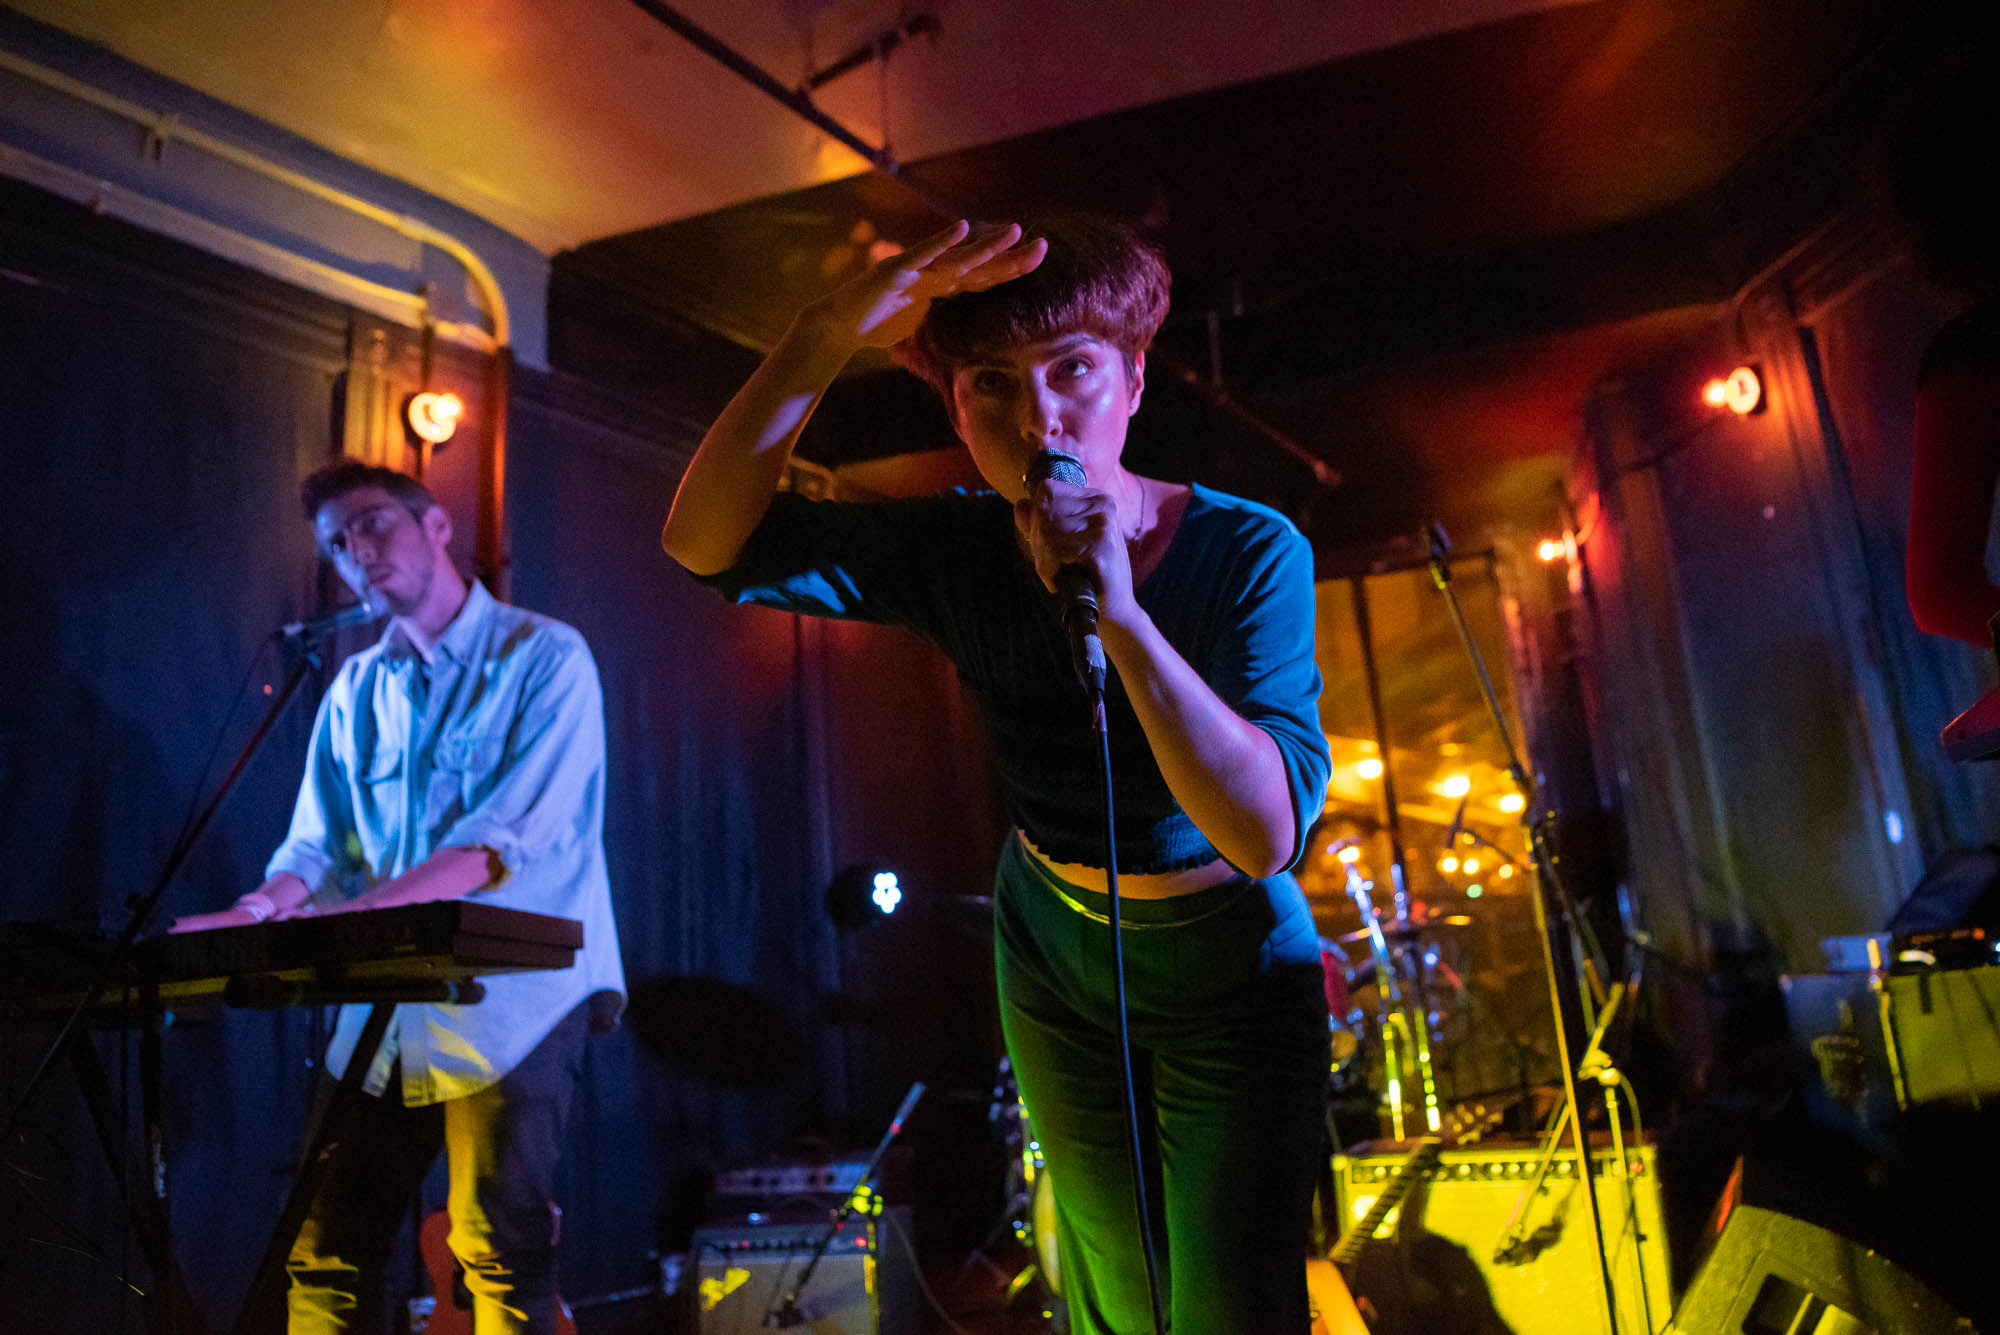 Carlos Hernandez and Rebecca Kauffman of Ava Luna during their set on Friday, October 4, 2019.